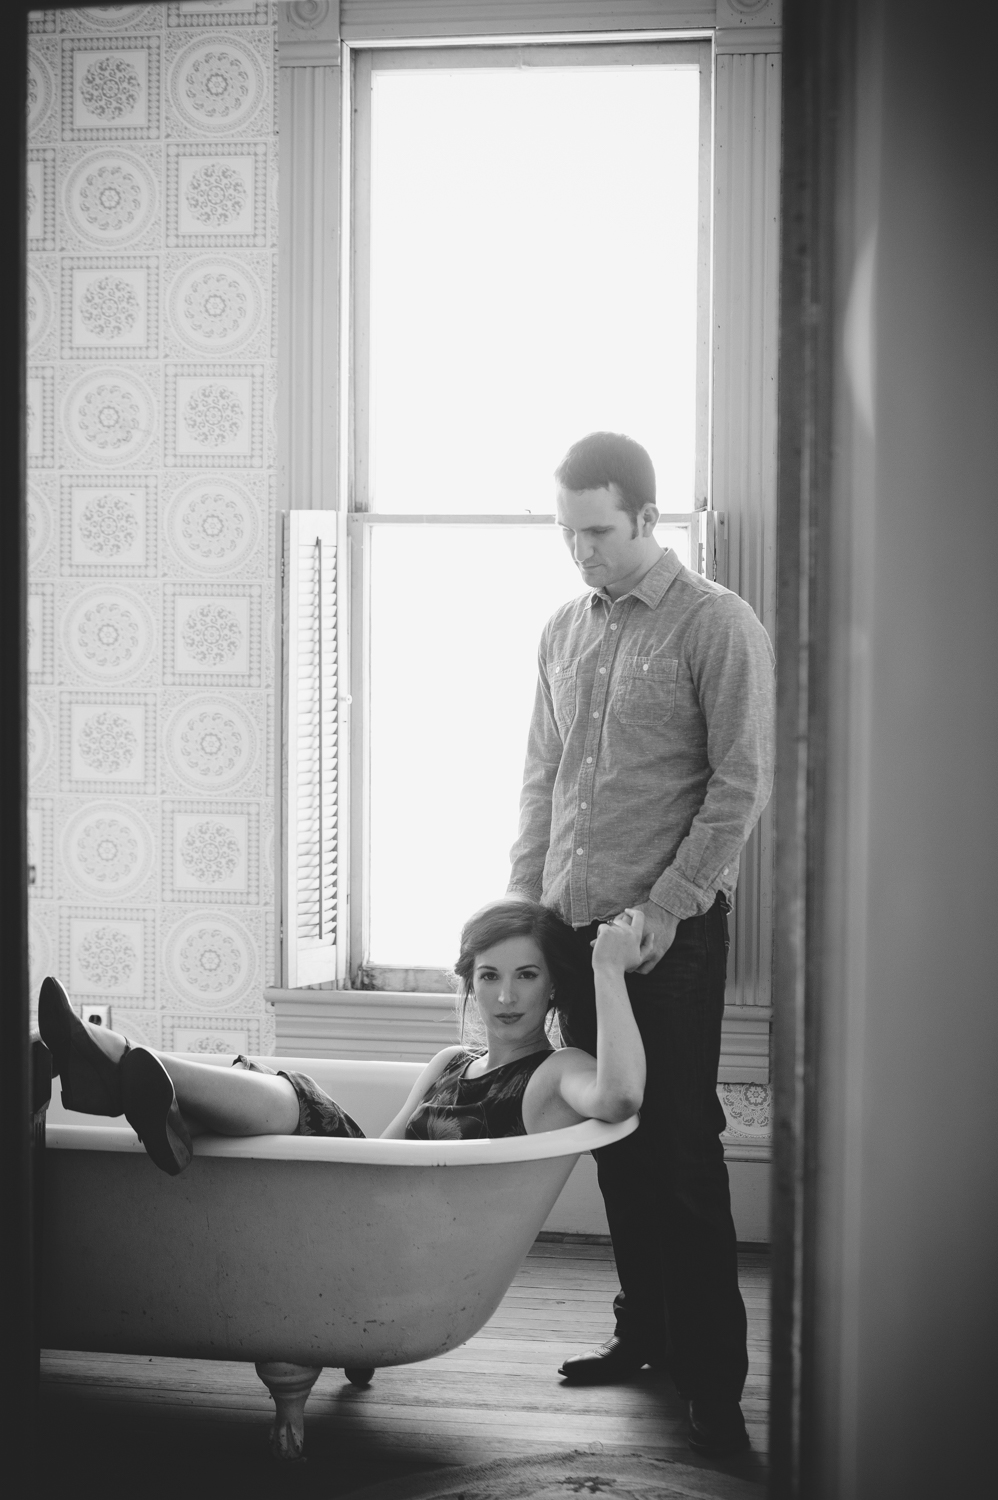 BARR_MANSION_ENGAGEMENT_SHOOT_BY_MATTHEW_MOORE_PHOTOGRAPHY_00050-2.jpg